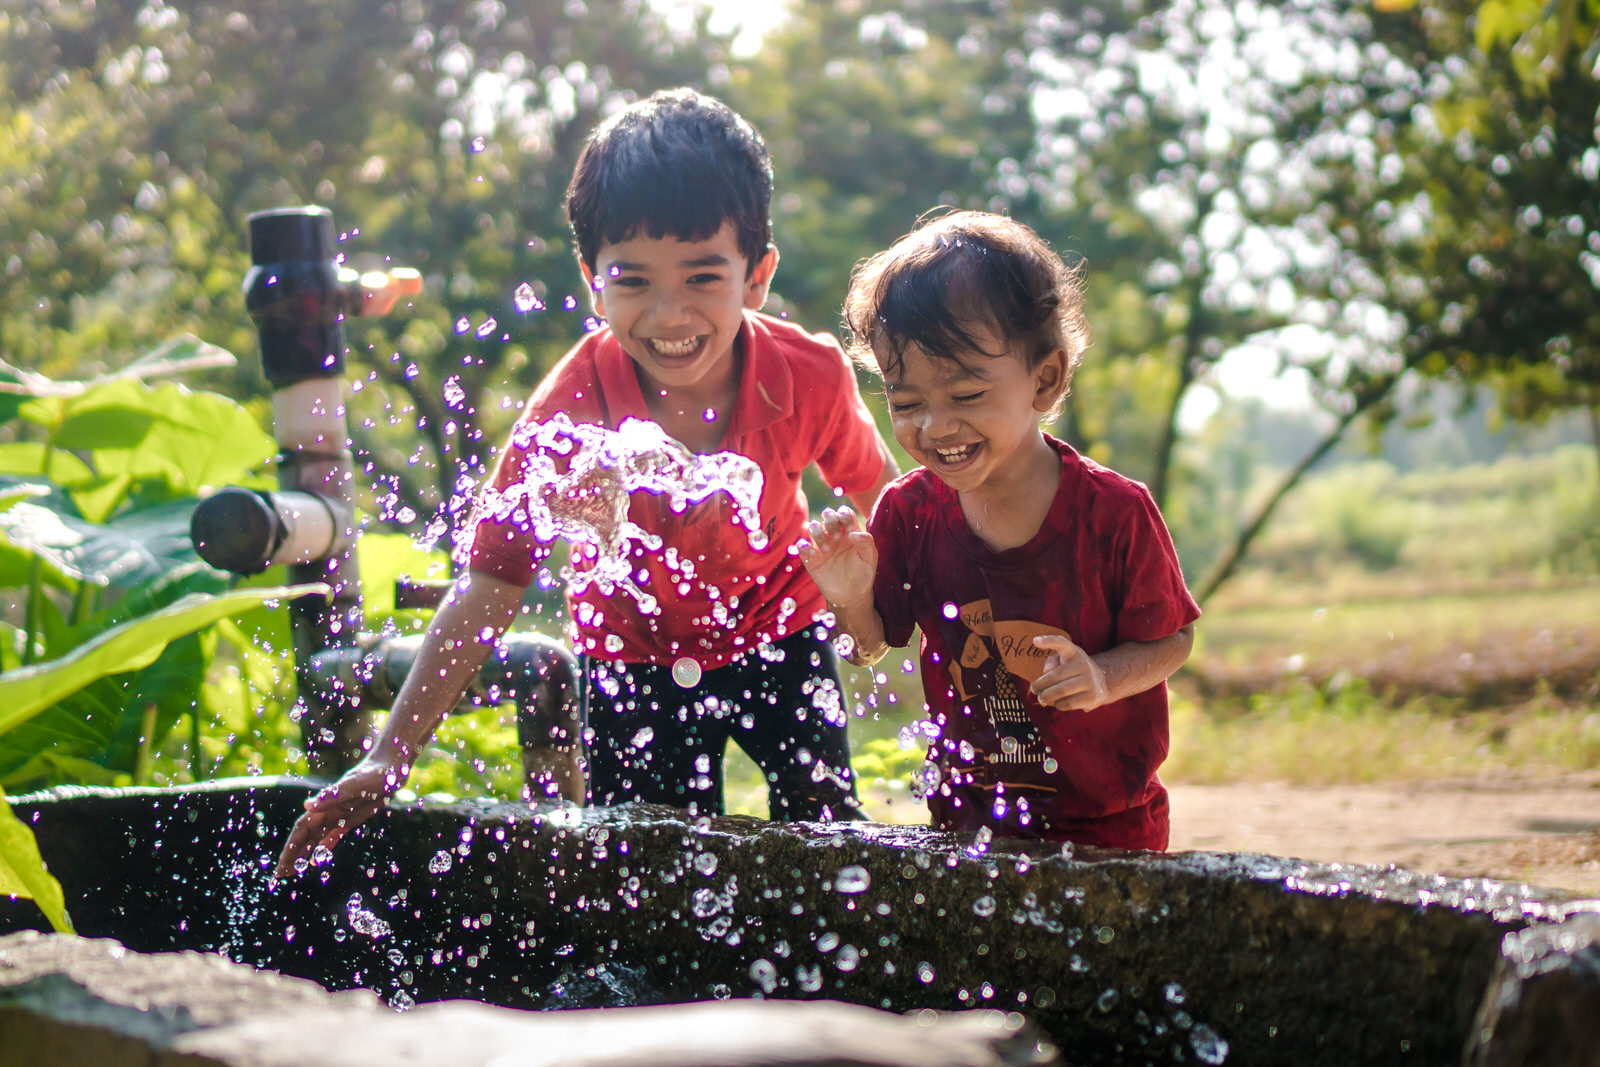 23122017-Boys-Playing-Water-Tank-211.jpg